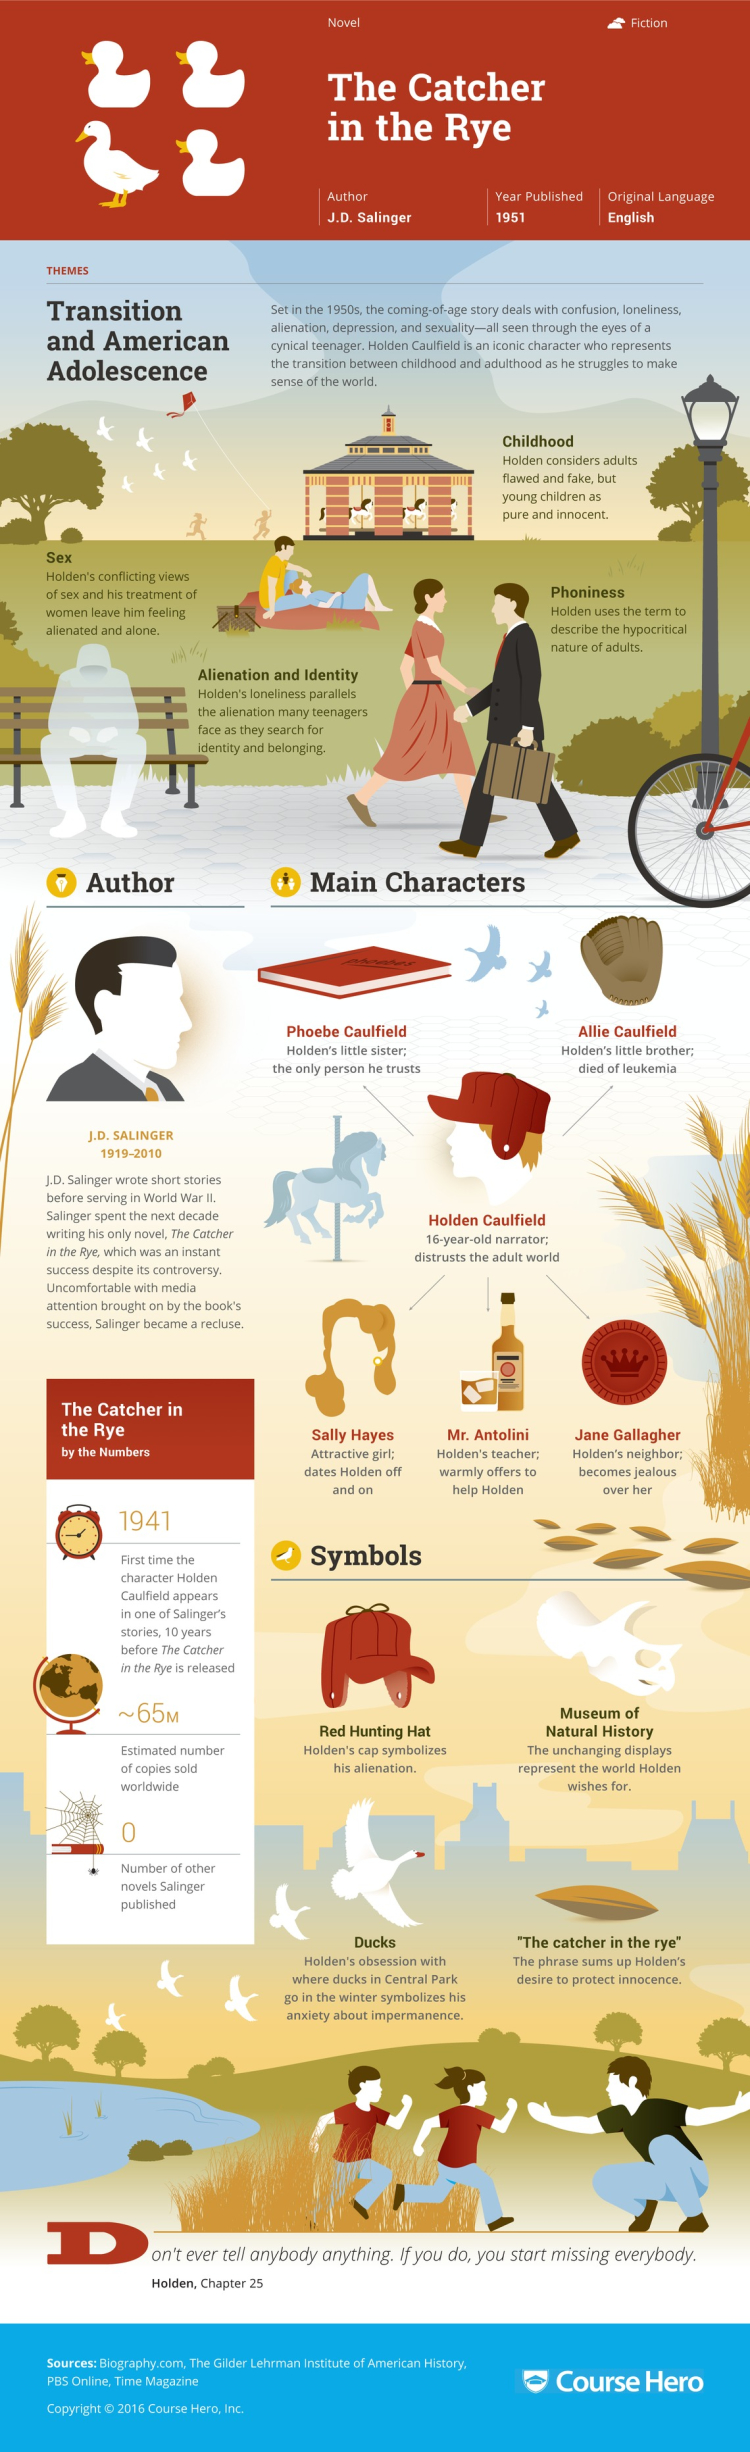 innocence in the catcher in the rye Today marks the 95th anniversary of jd salinger's birth the famously reclusive author, known for penning the catcher in the rye and franny and zooey, has been in the spotlight more than he.